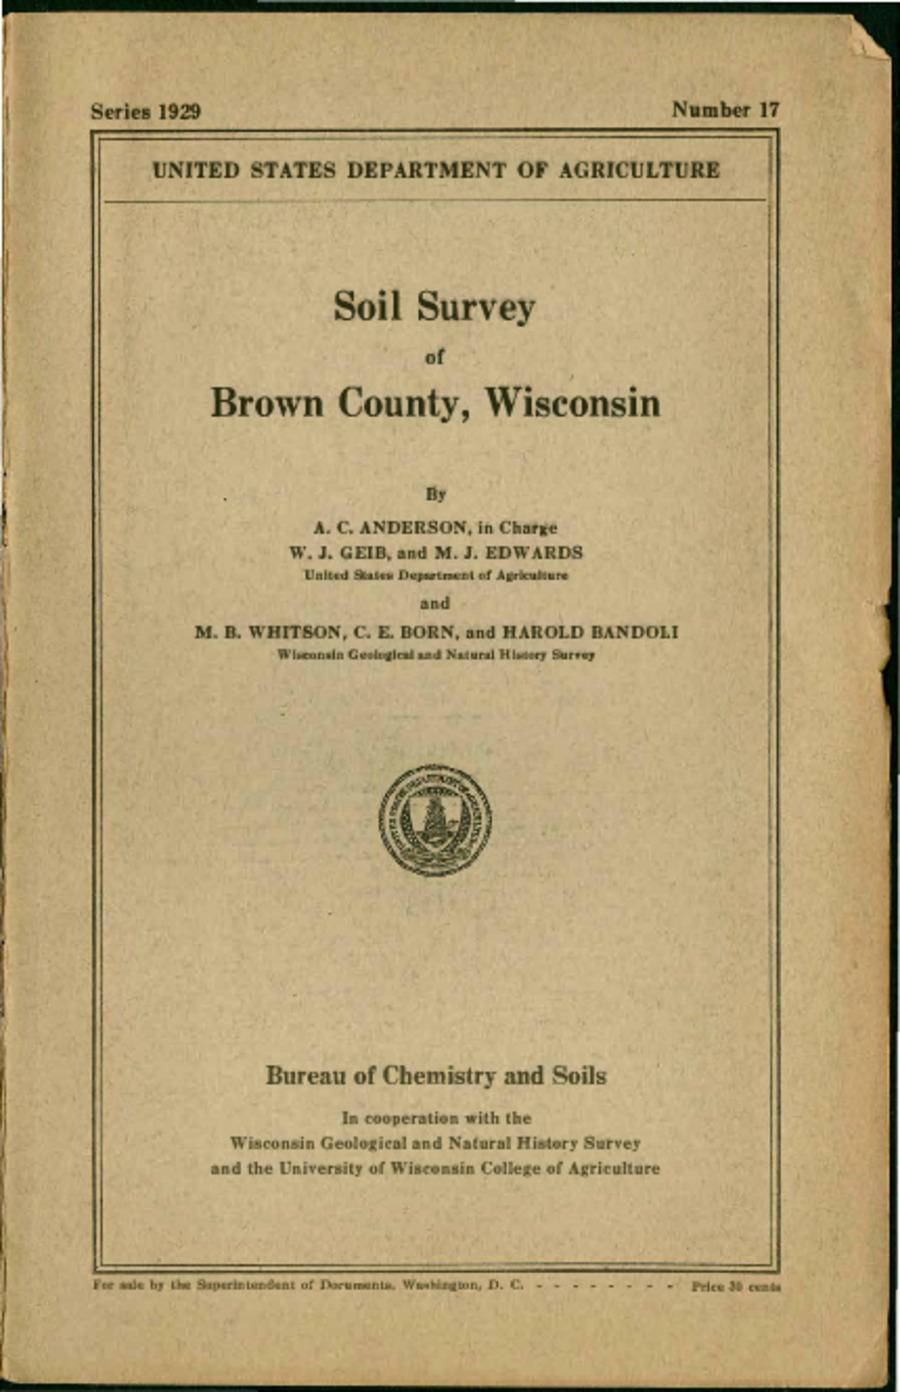 Wisconsin geological natural history survey soil survey of soil survey of brown county wisconsin usda 1929 aiddatafo Gallery